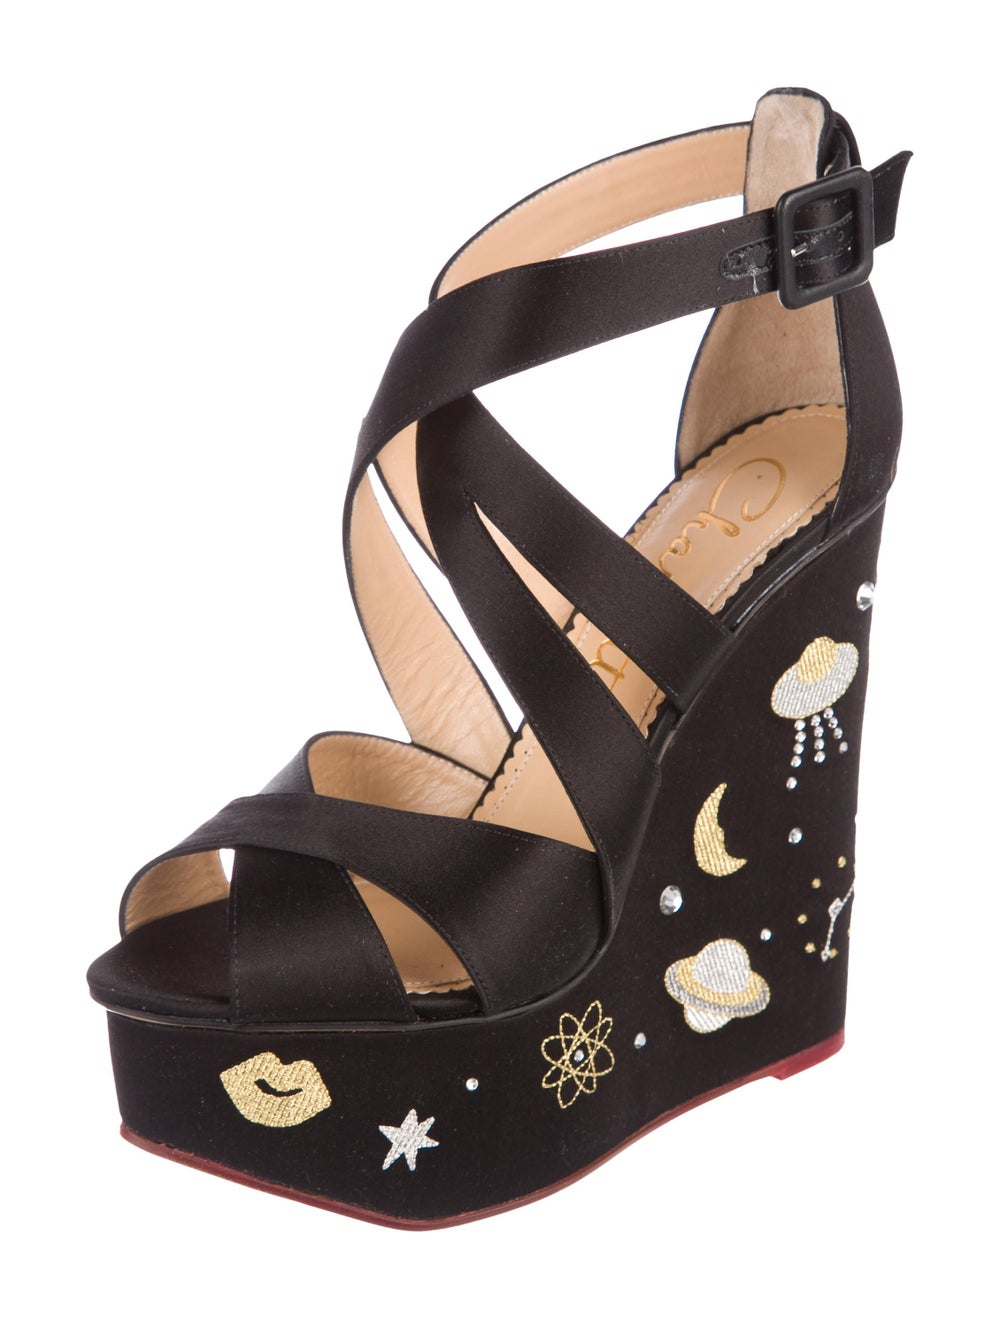 Charlotte Olympia Space Age Satin Wedges Black - image 2